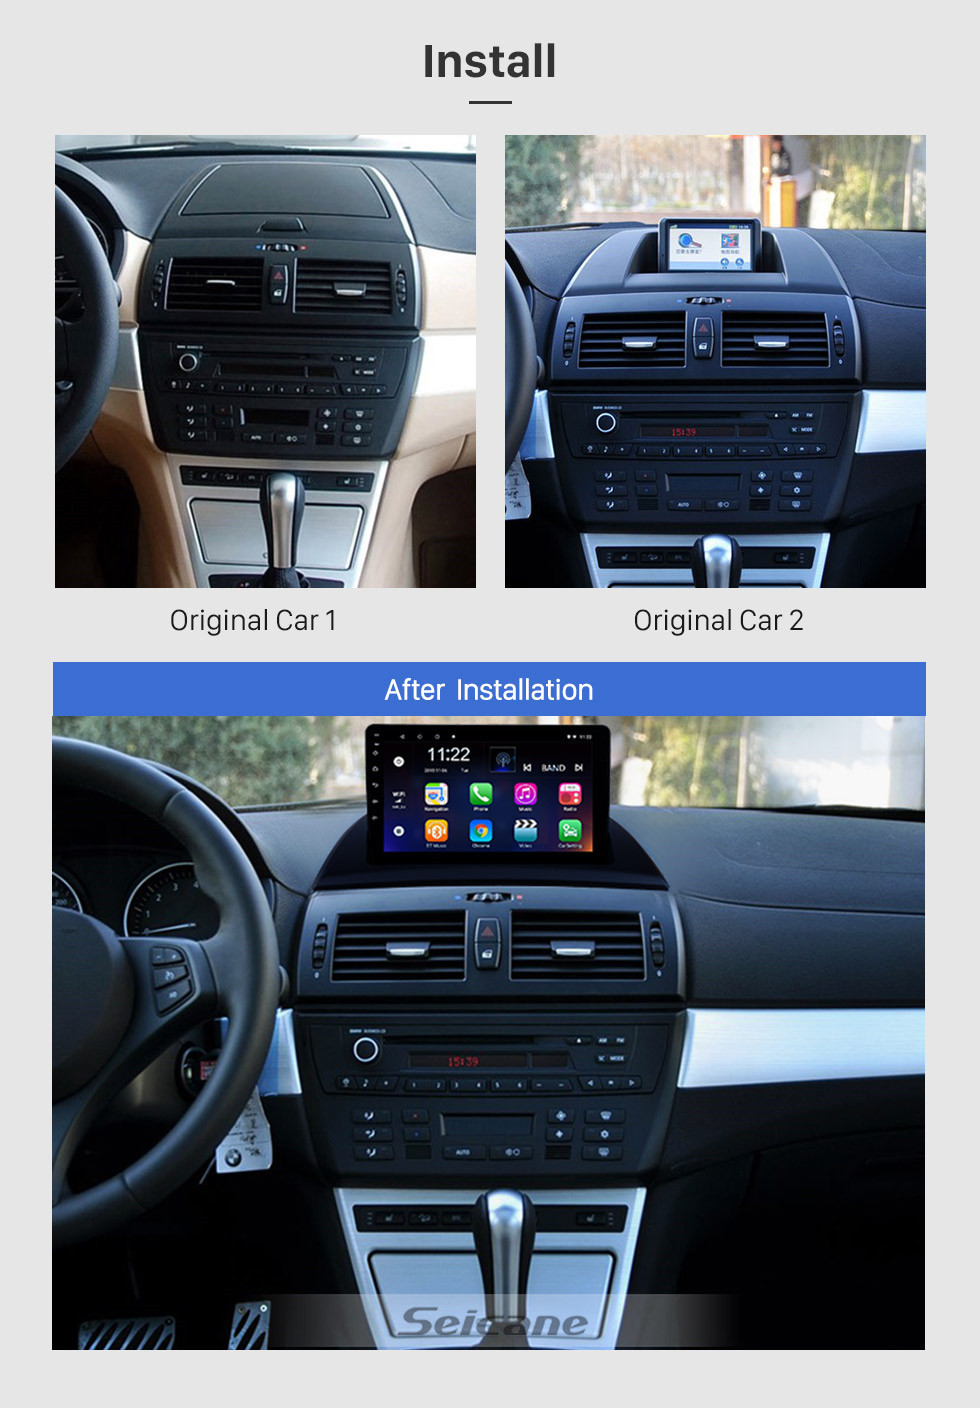 Seicane HD Touchscreen Android 10.0 9 inch for 2004 2005 2006-2012 BMW X3 E83 2.0i 2.5i 2.5si 3.0i 3.0si 2.0d 3.0d 3.0sd GPS Navigation System Radio with Bluetooth support Carplay